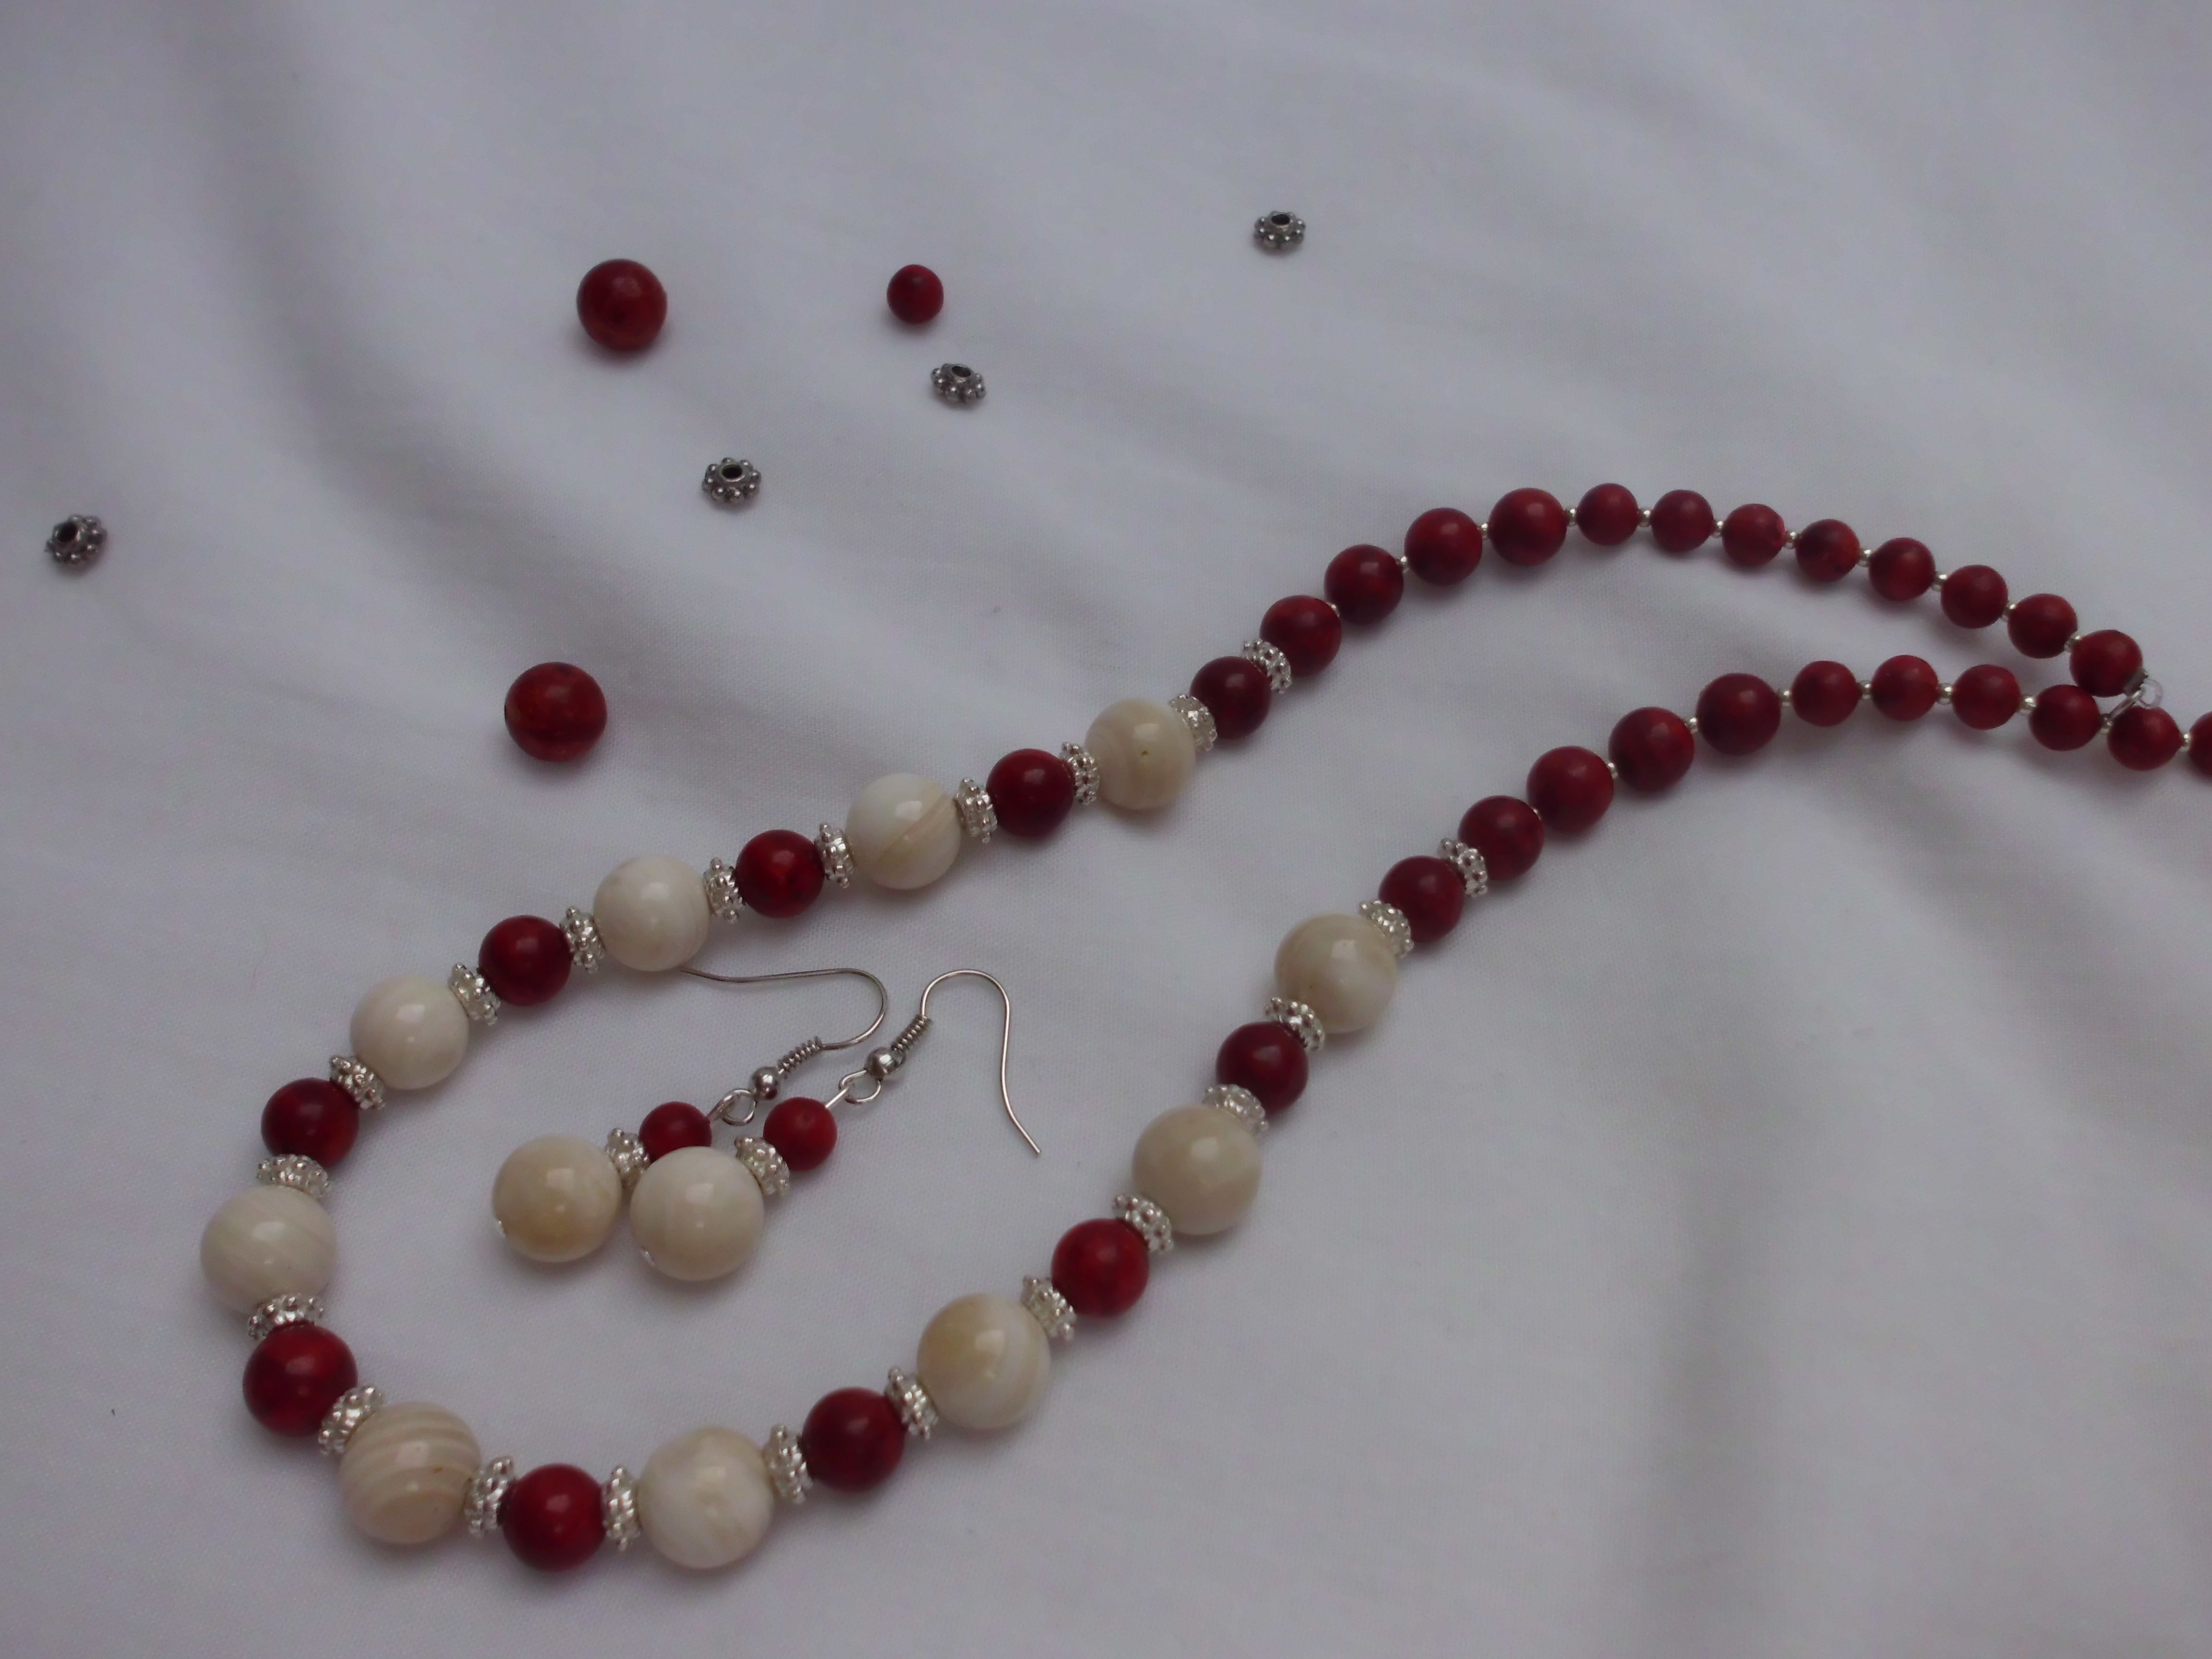 Coral and shell 60€ More on http://nakitkamala.wix.com/europe